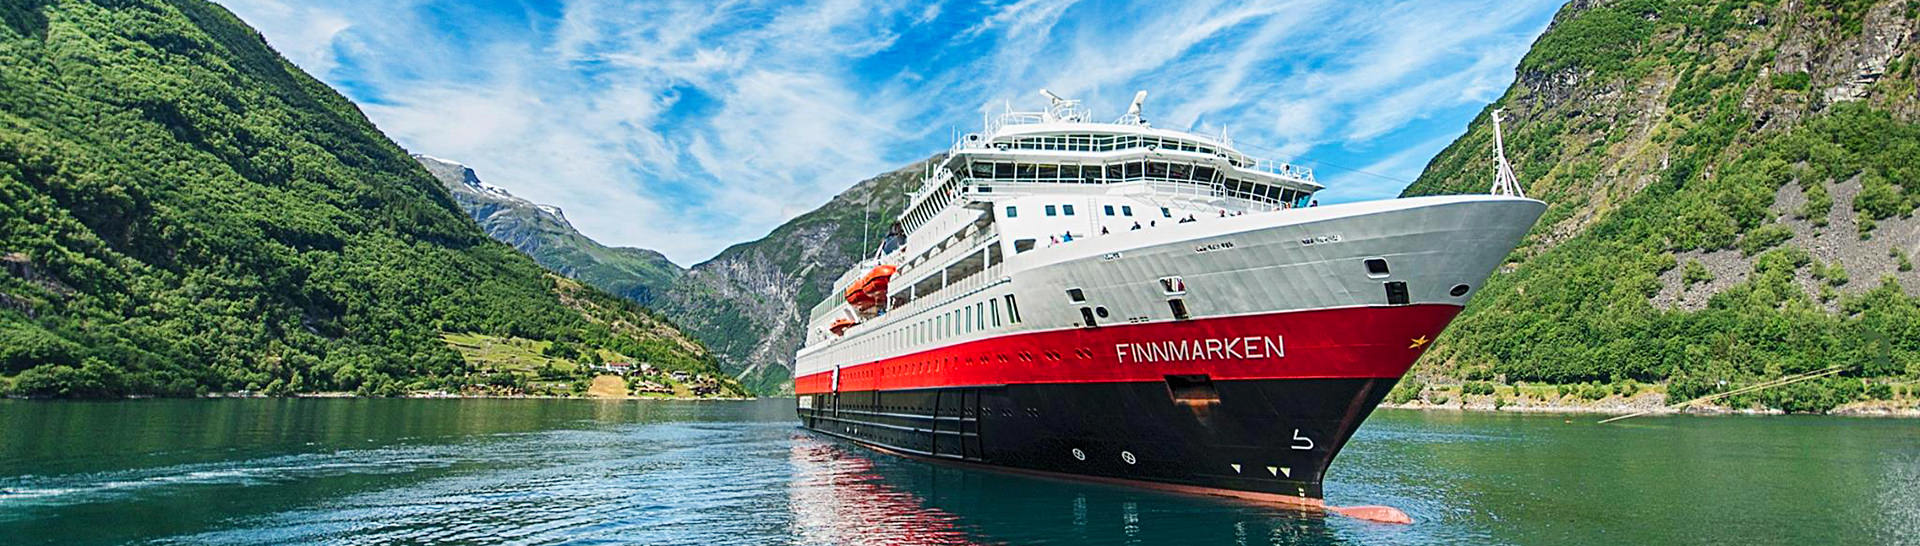 Scandinavian Package Tours & Trips 2019/2020 - Firebird Tours ®